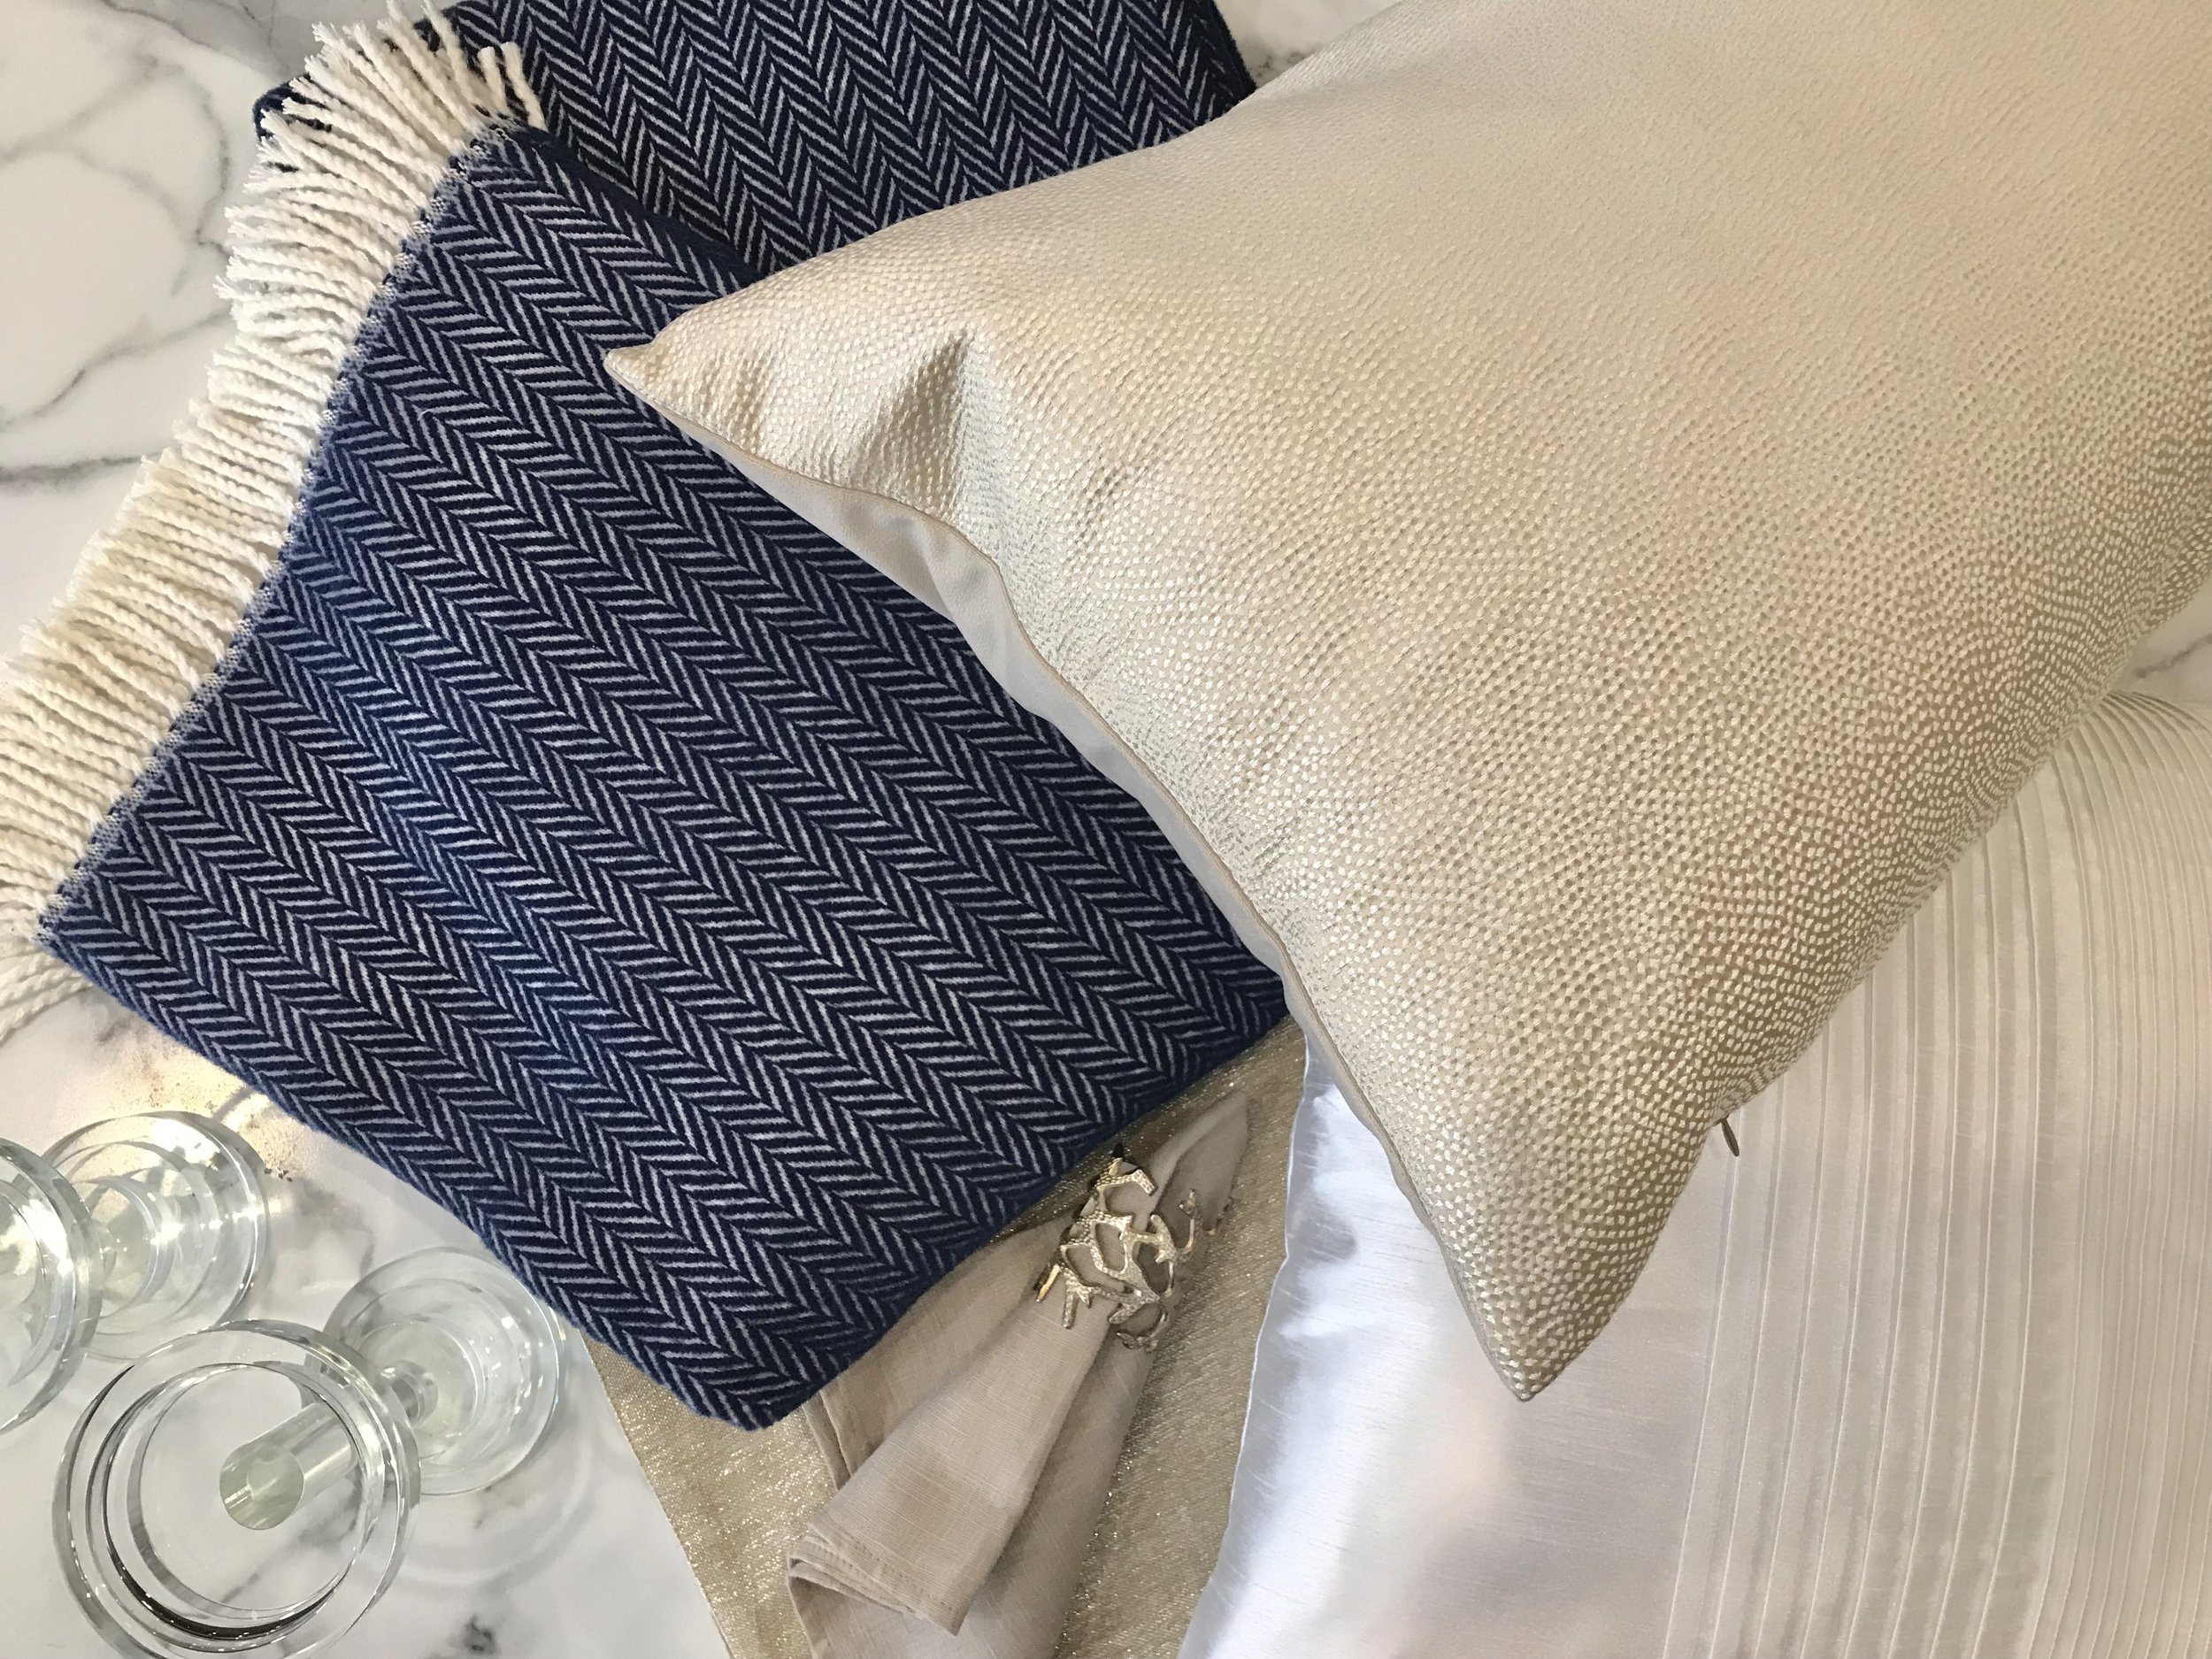 Crystal Candle Pillar (small) - $56.95 (medium) - $63.95, Blue Chevron Throw - $98.95, Gold Placemat - $23.95, Linen Napkin - $43.95, Silver Coral Napkin Ring - $14.95, Champagne Lumbar Pillow - $74.95, White Pleated Pillow - $48.95